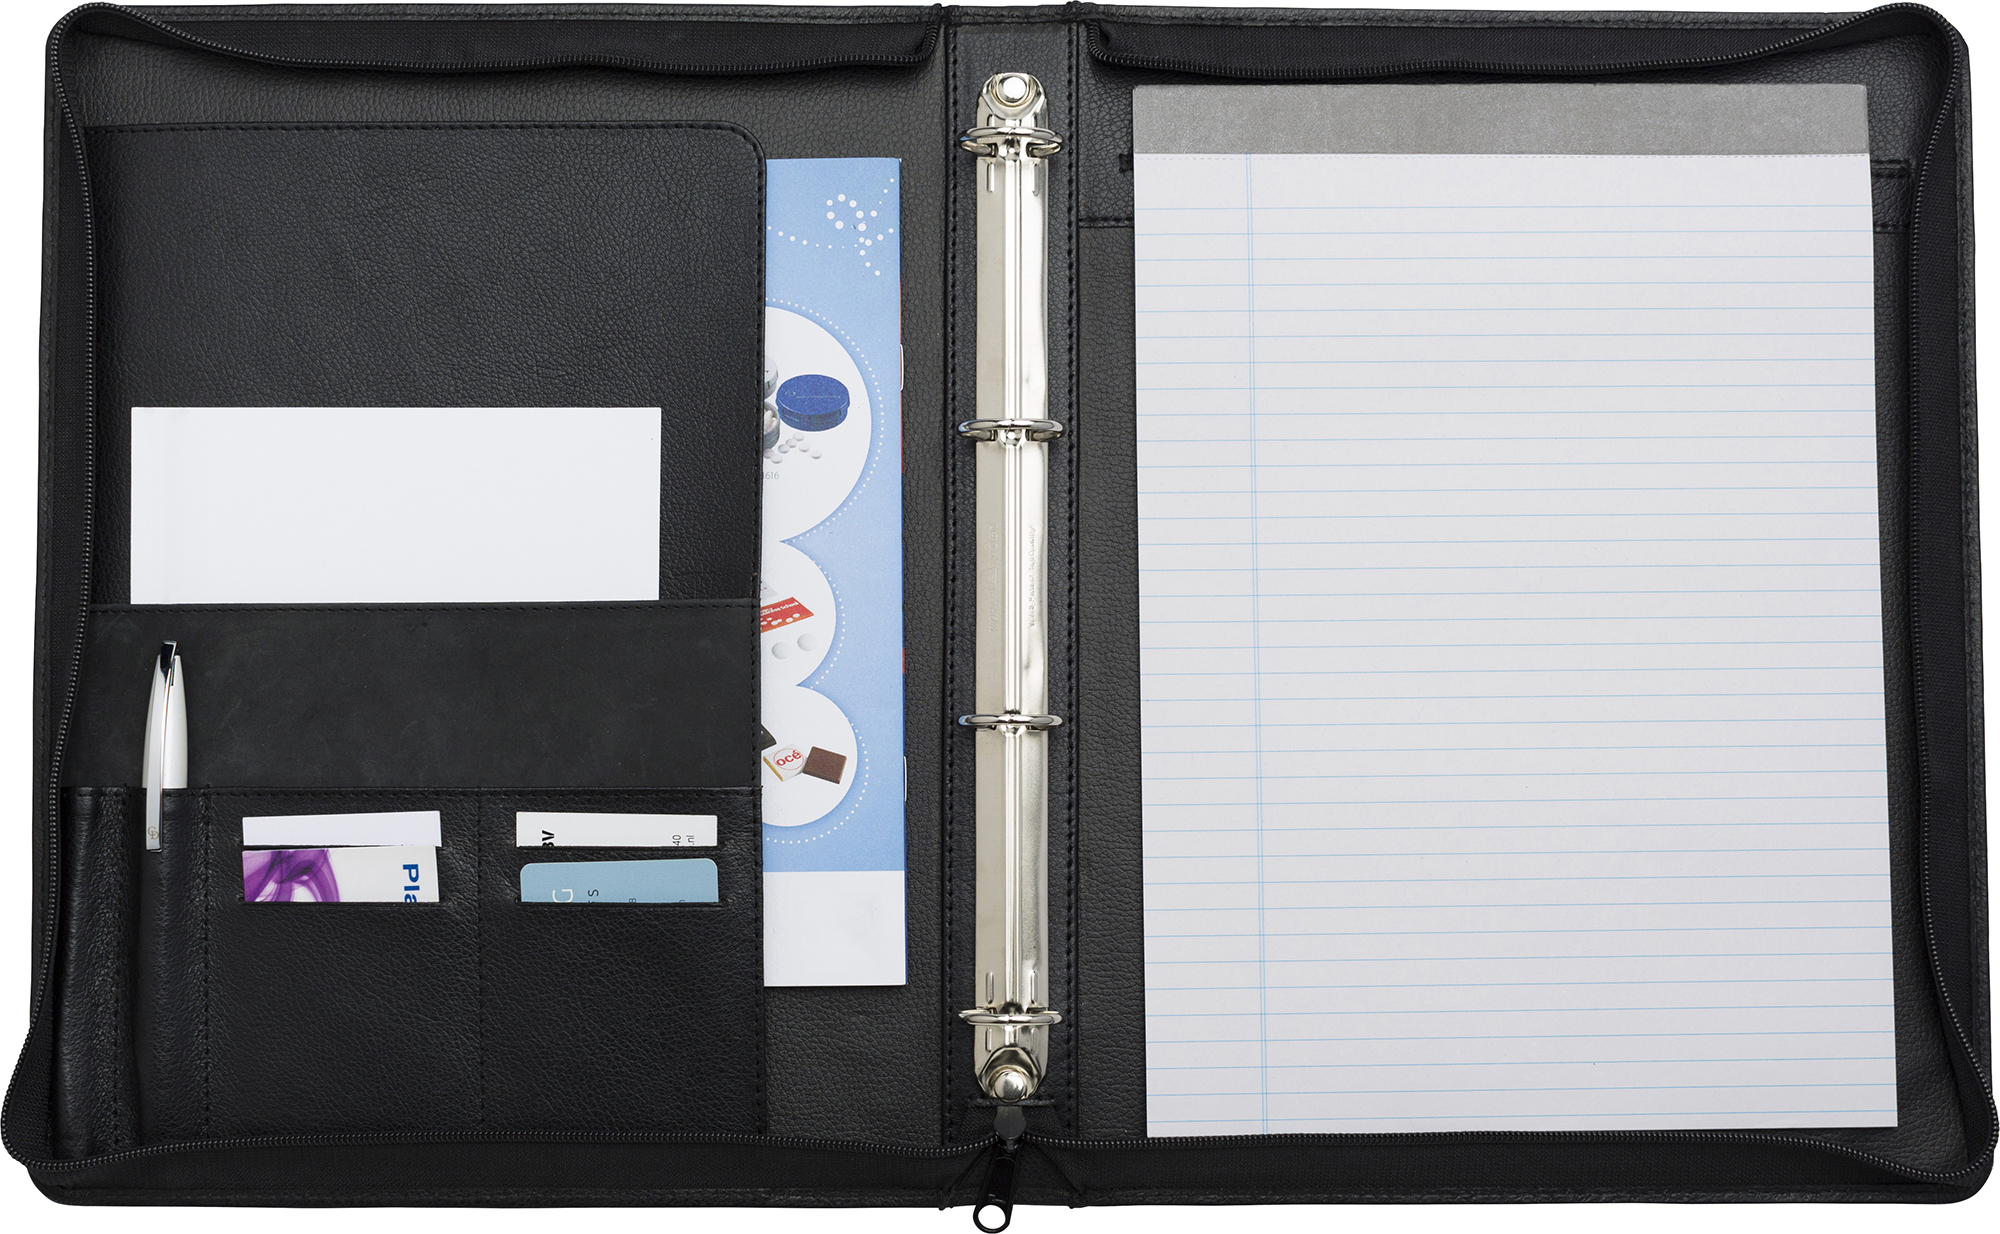 Promotional Leather Charles Dickens A4 zipped folder